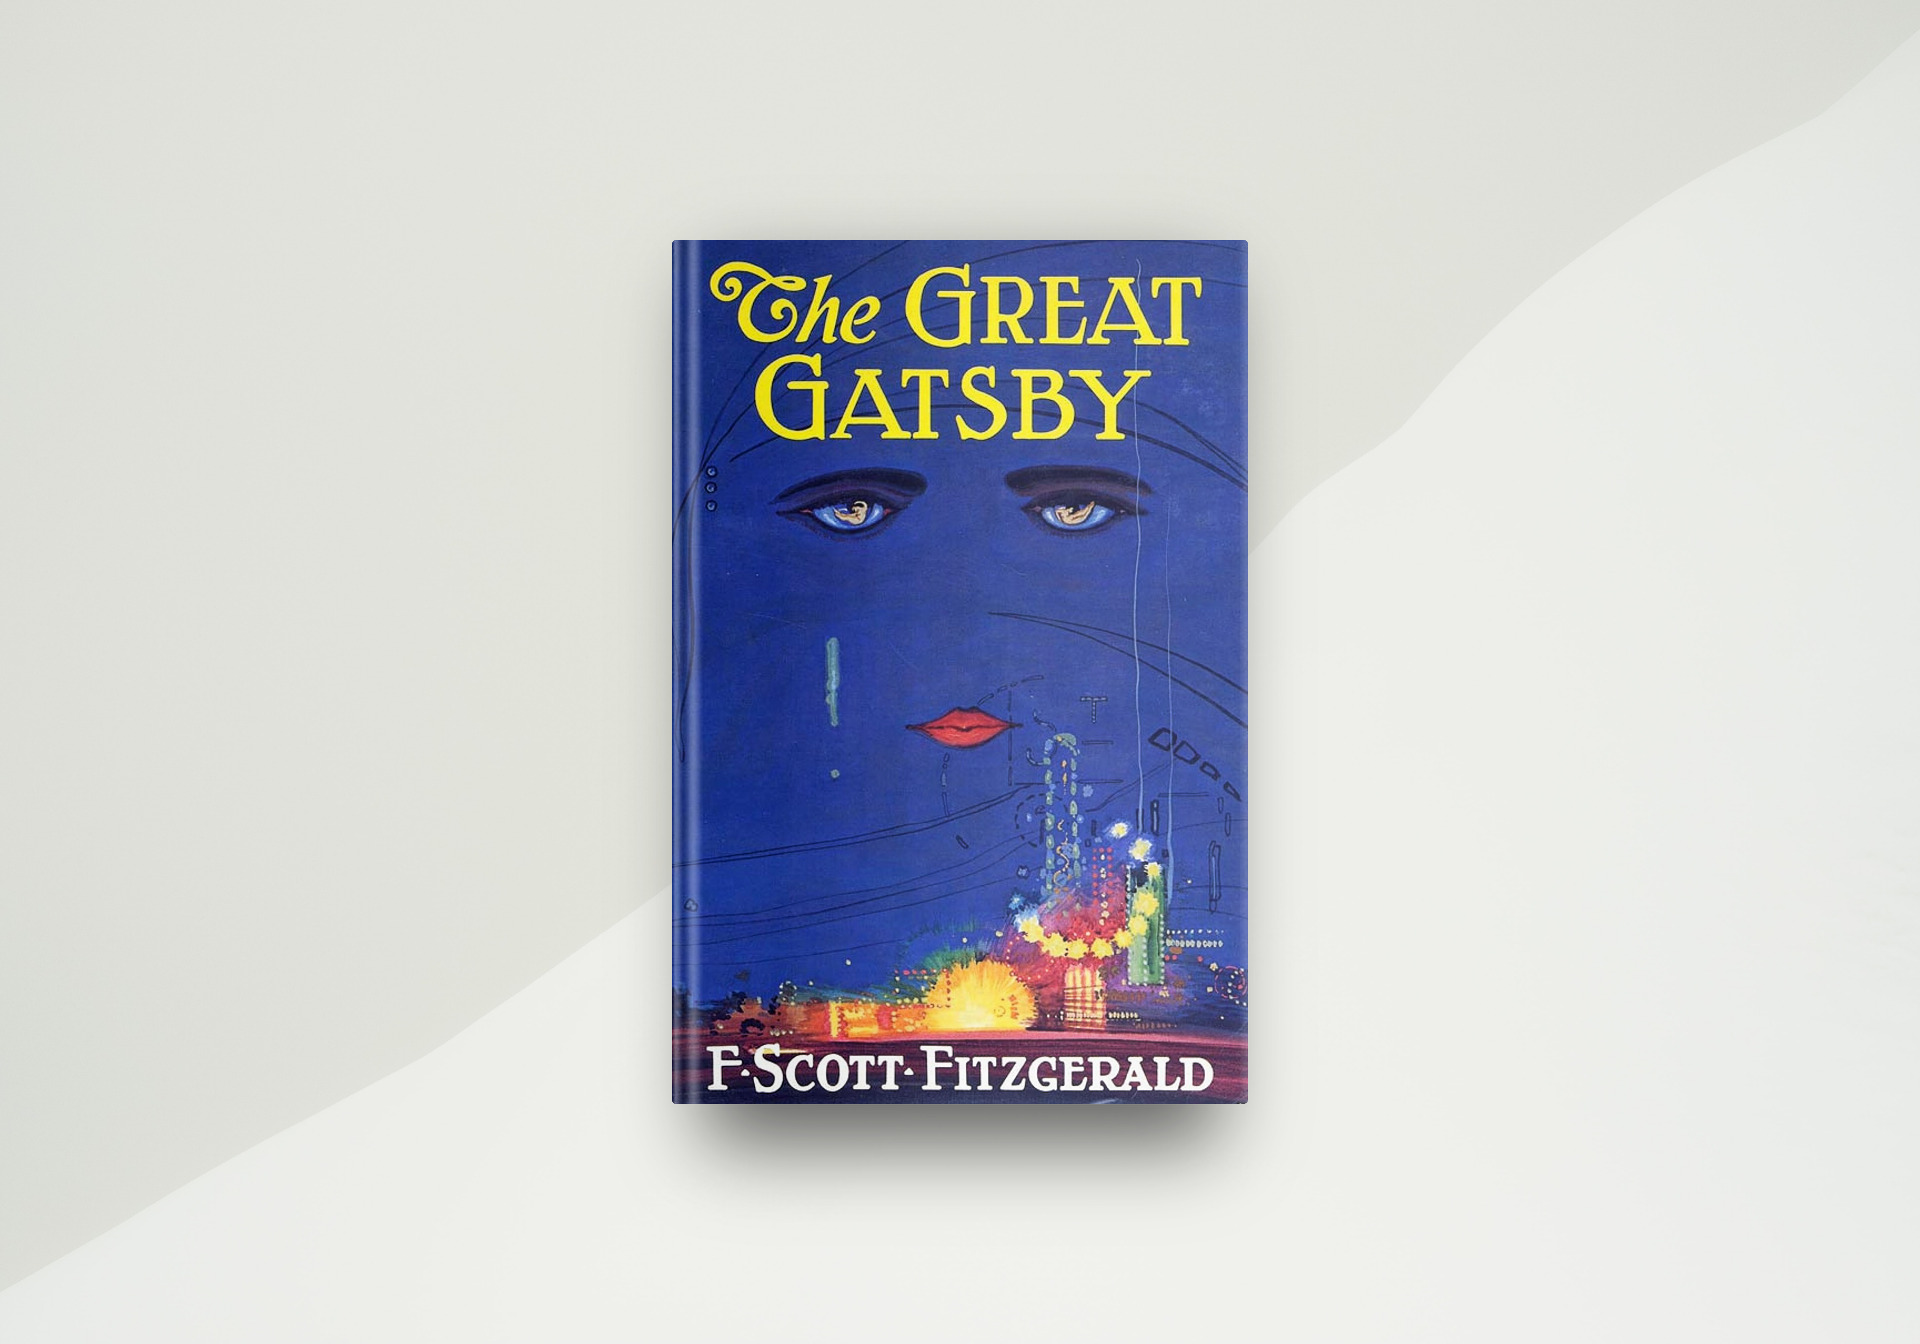 The Great Gatsby By F. Scott Fitzgerald - Book Cover